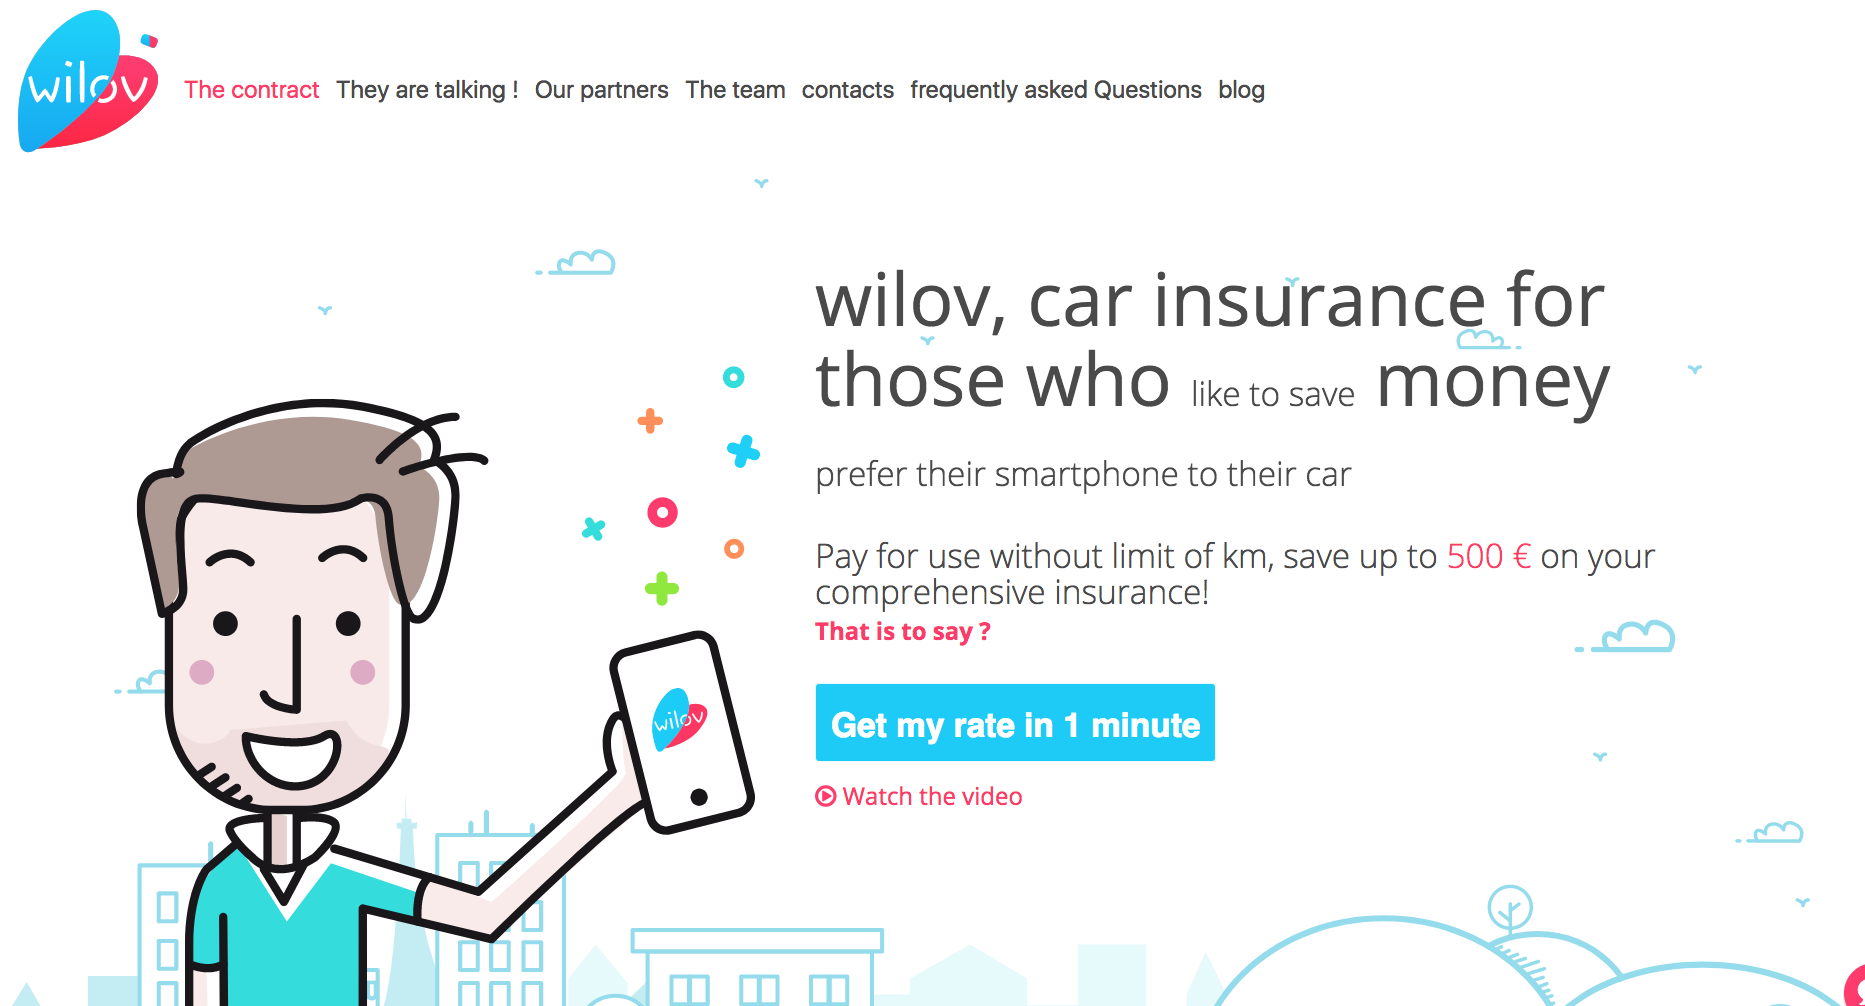 The Growing List of Flexible Insurance Players